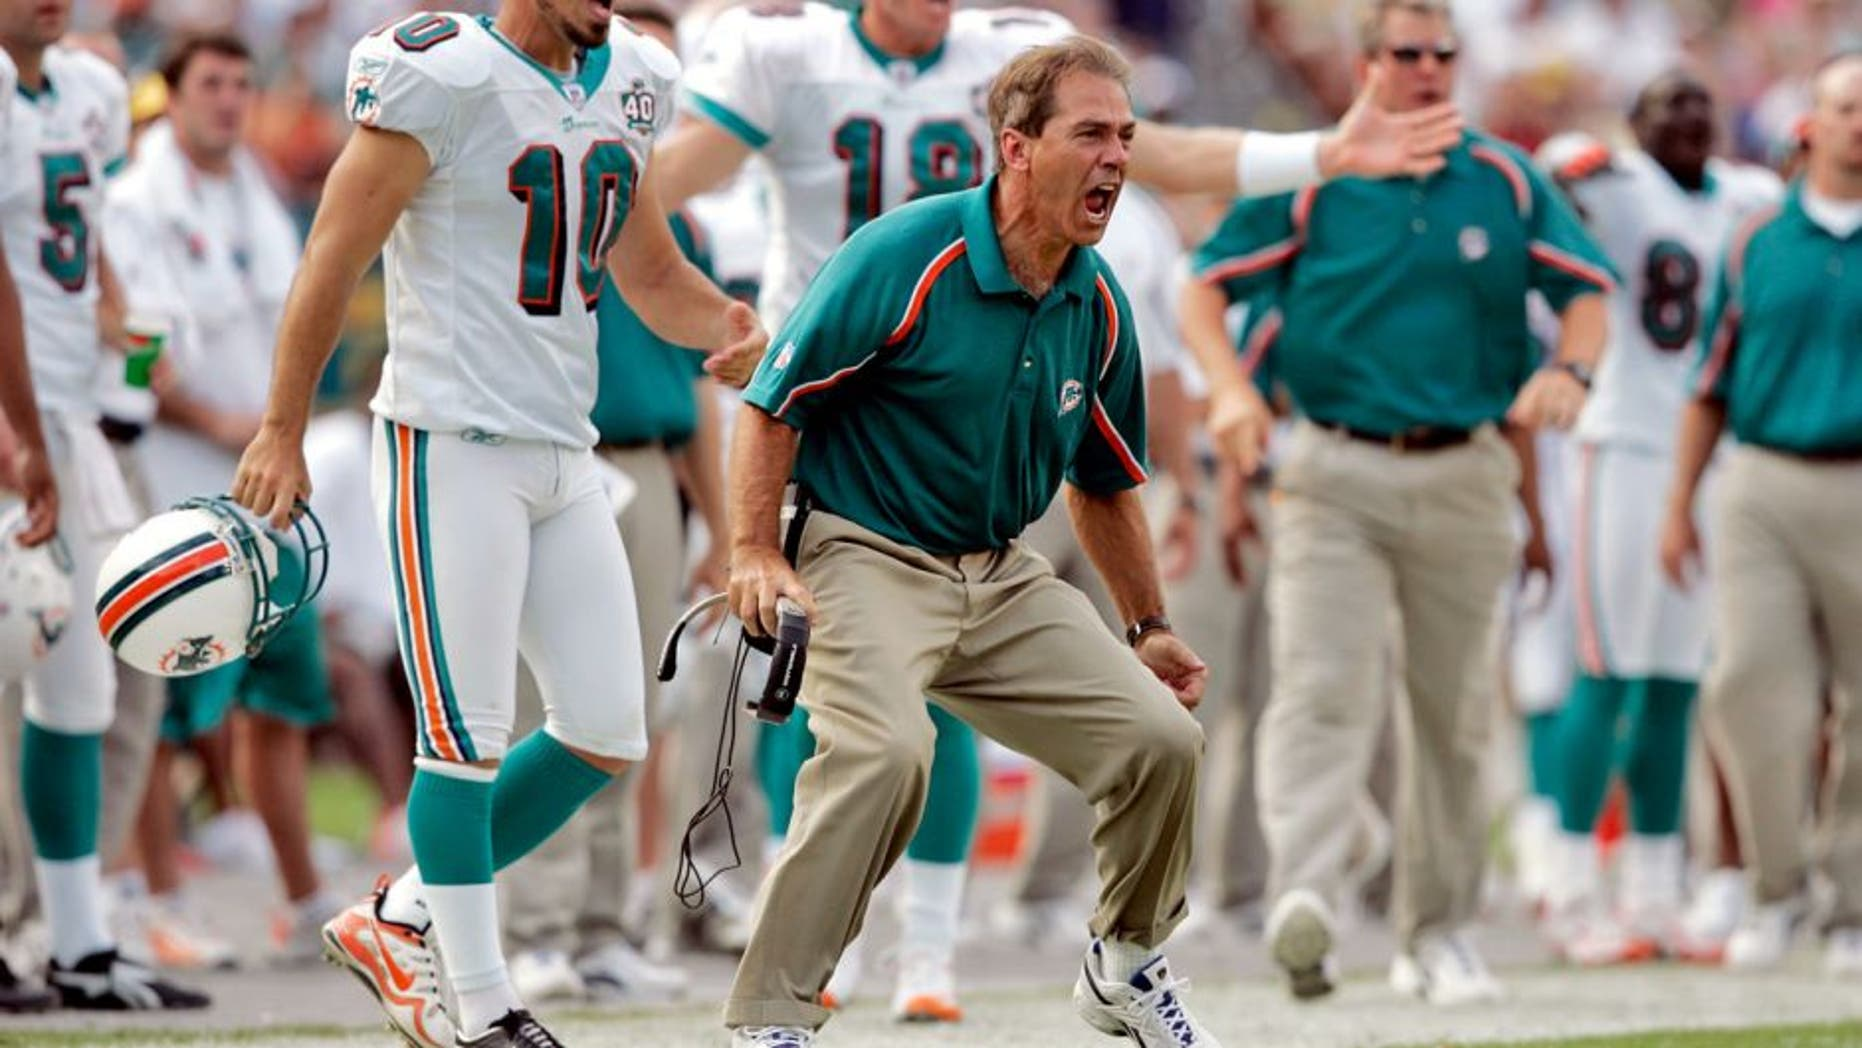 MIAMI, FL - NOVEMBER 13: Nick Saban head coach of the Miami Dolphins argues a pass interference call against his team against the New England Patriots at Dolphins Stadium on November 13, 2005 in Miami, Florida. The Patriots defeated the Dolphins 23-16. (Photo by Joe Robbins/Getty Images)